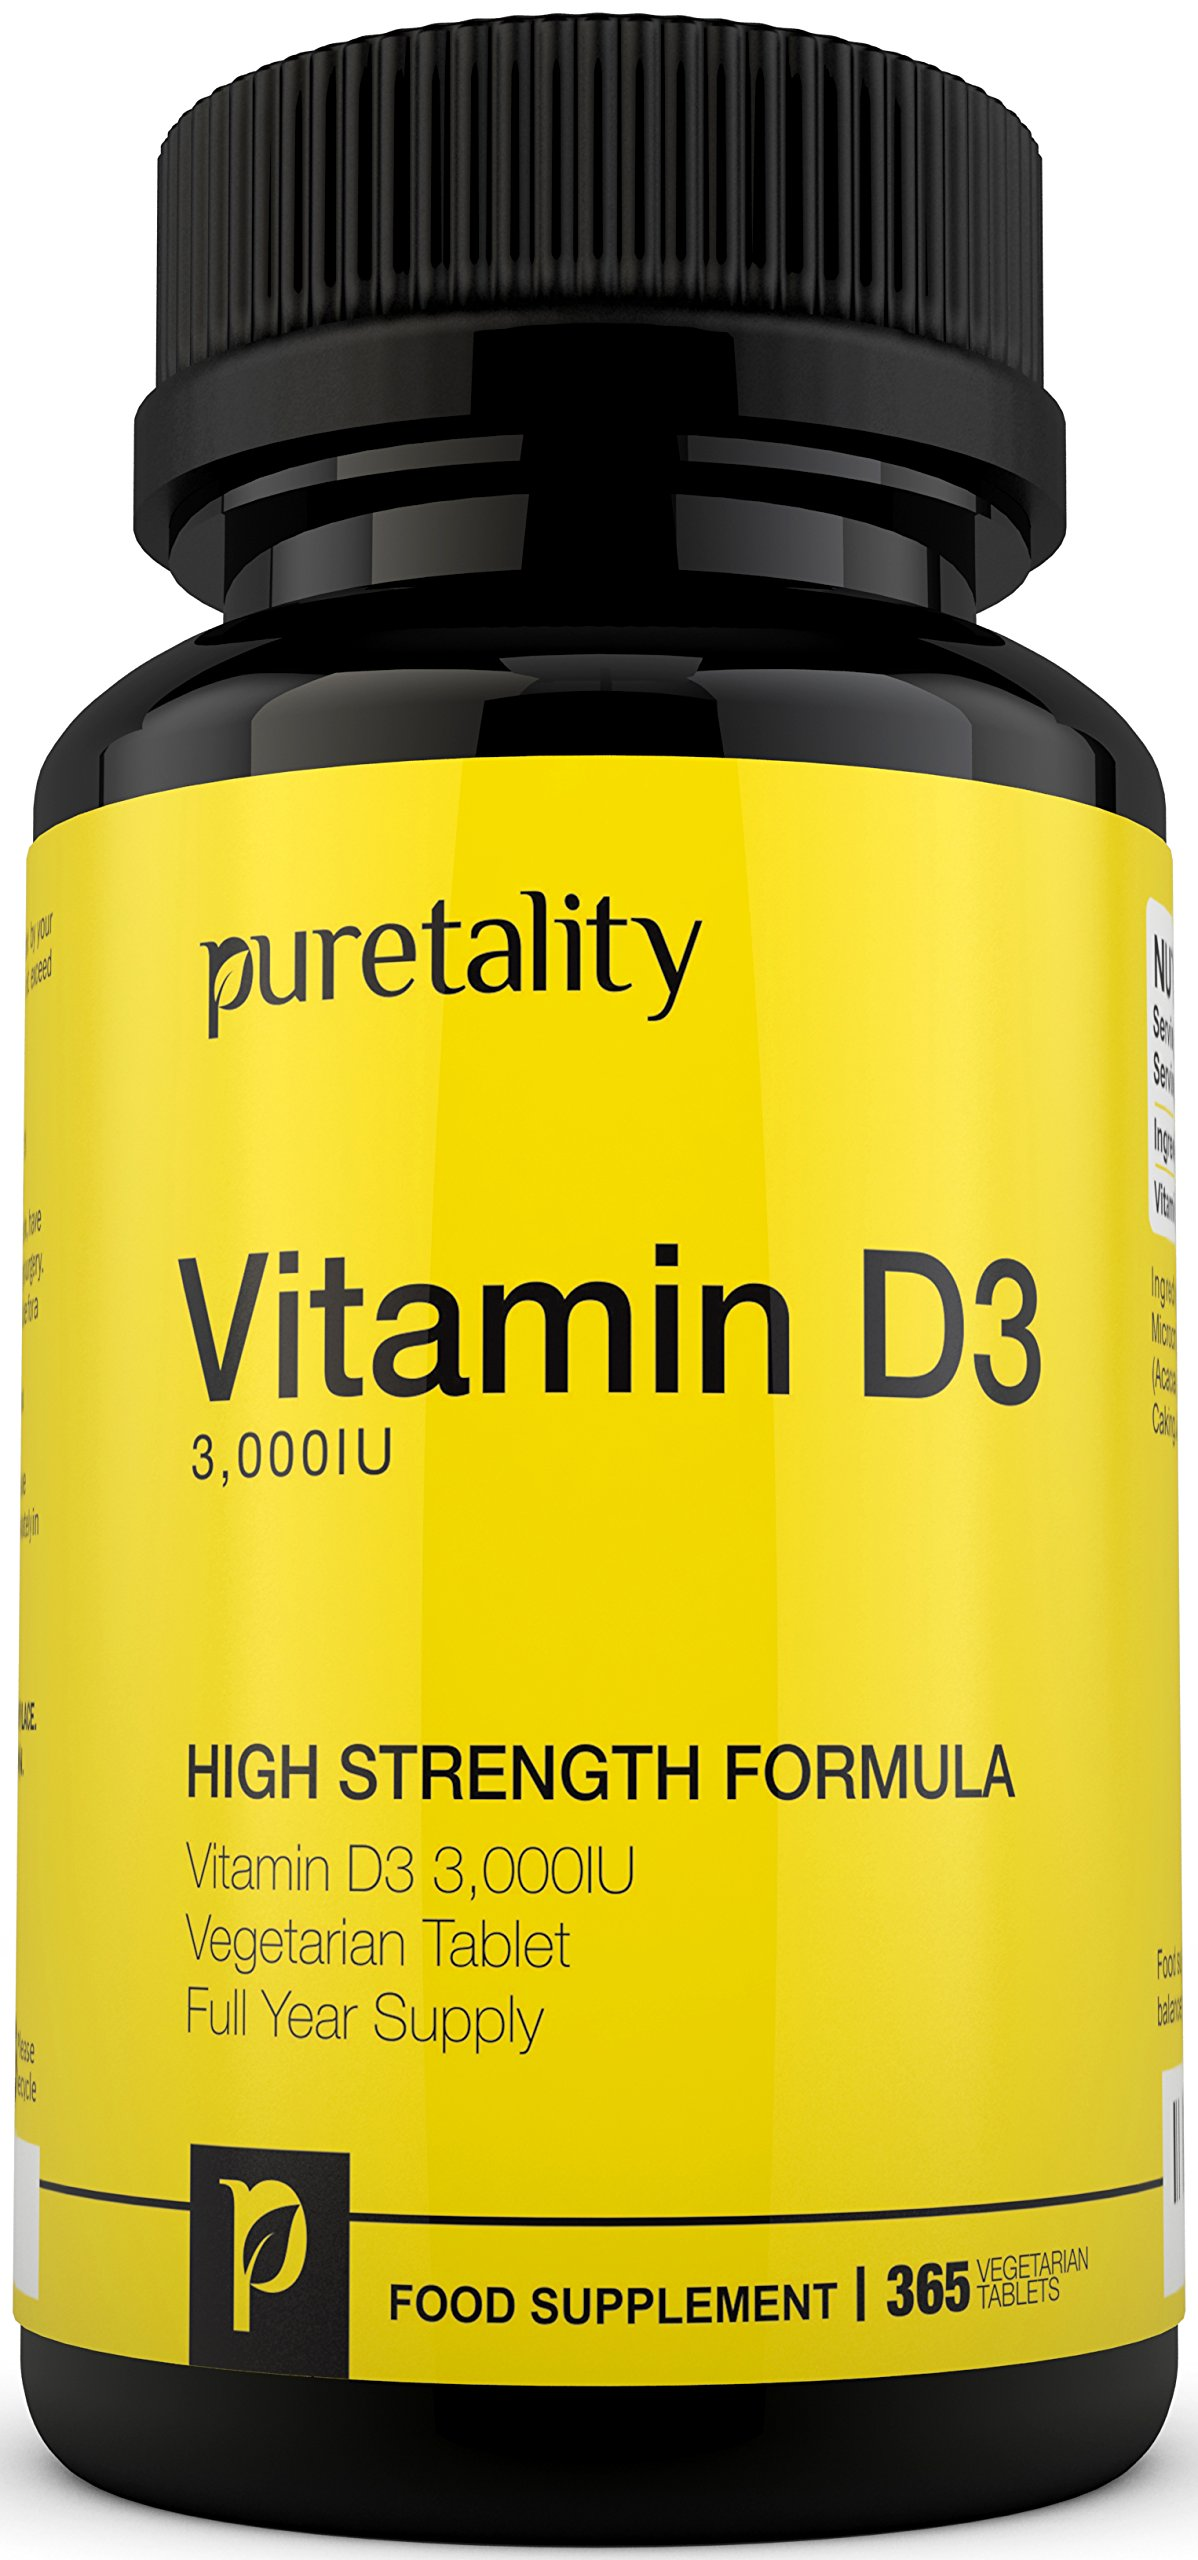 Vitamin D3 3000IU 365 Tablets (12 Month Supply) – High Strength Vitamin D Cholecalciferol Tablets, not Capsules or Softgels, Vegetarian Vitamin D3 also Gluten & Dairy Free by Puretality product image